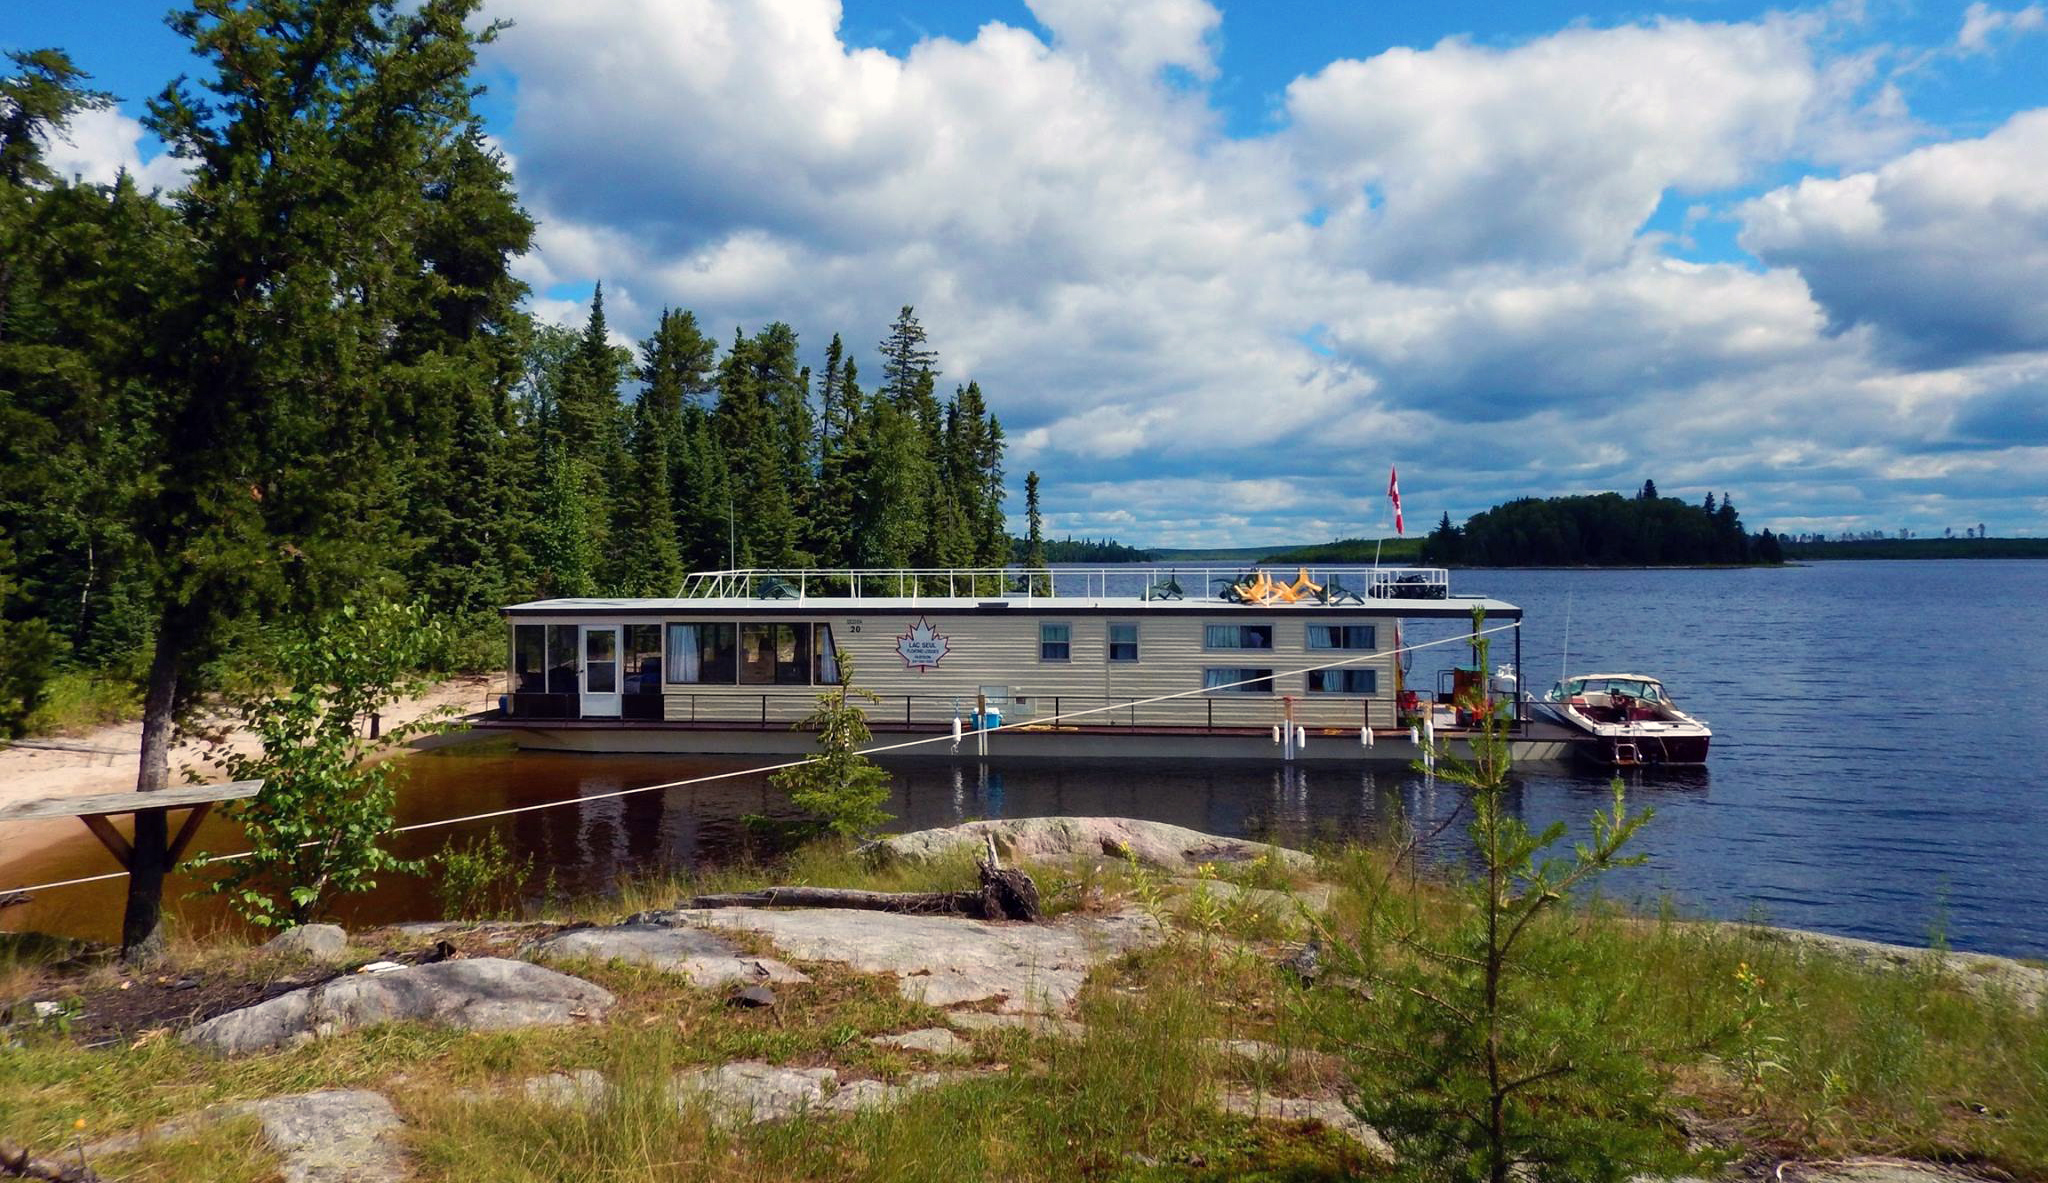 Lac seul floating lodges sunset country ontario canada for Ontario canada fishing resorts